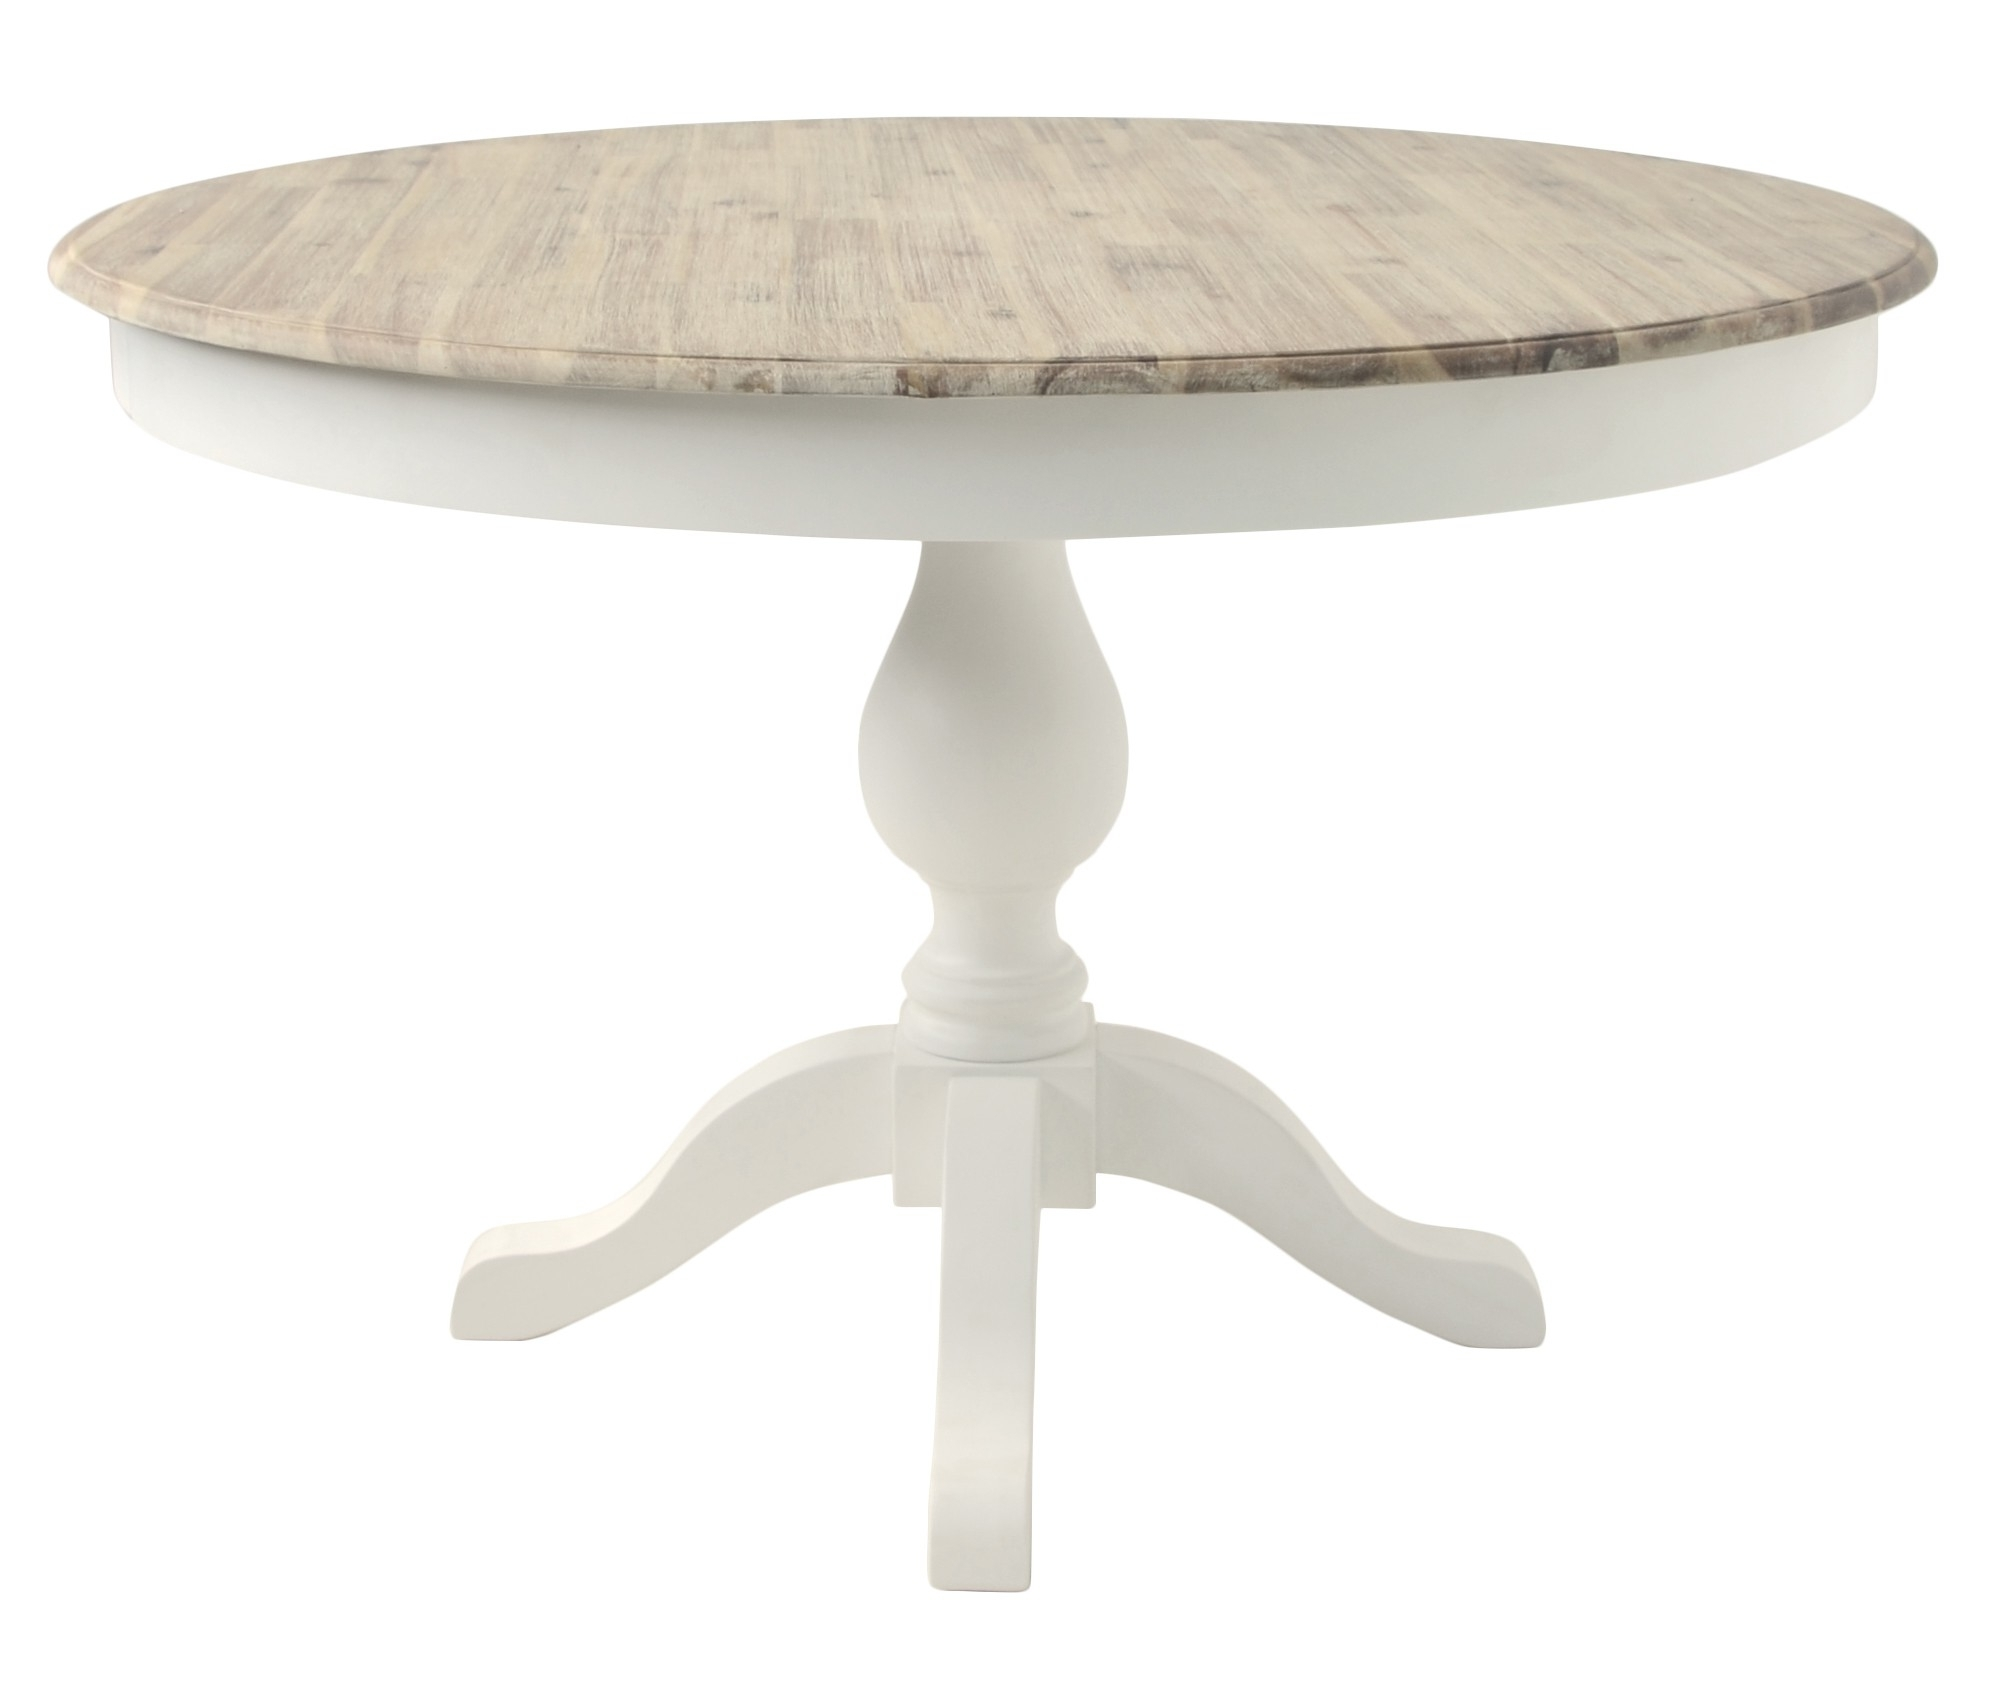 2018 White Circle Dining Tables Intended For Florence Large Pedestal Round Dining Table (120Cm) – White (View 8 of 25)